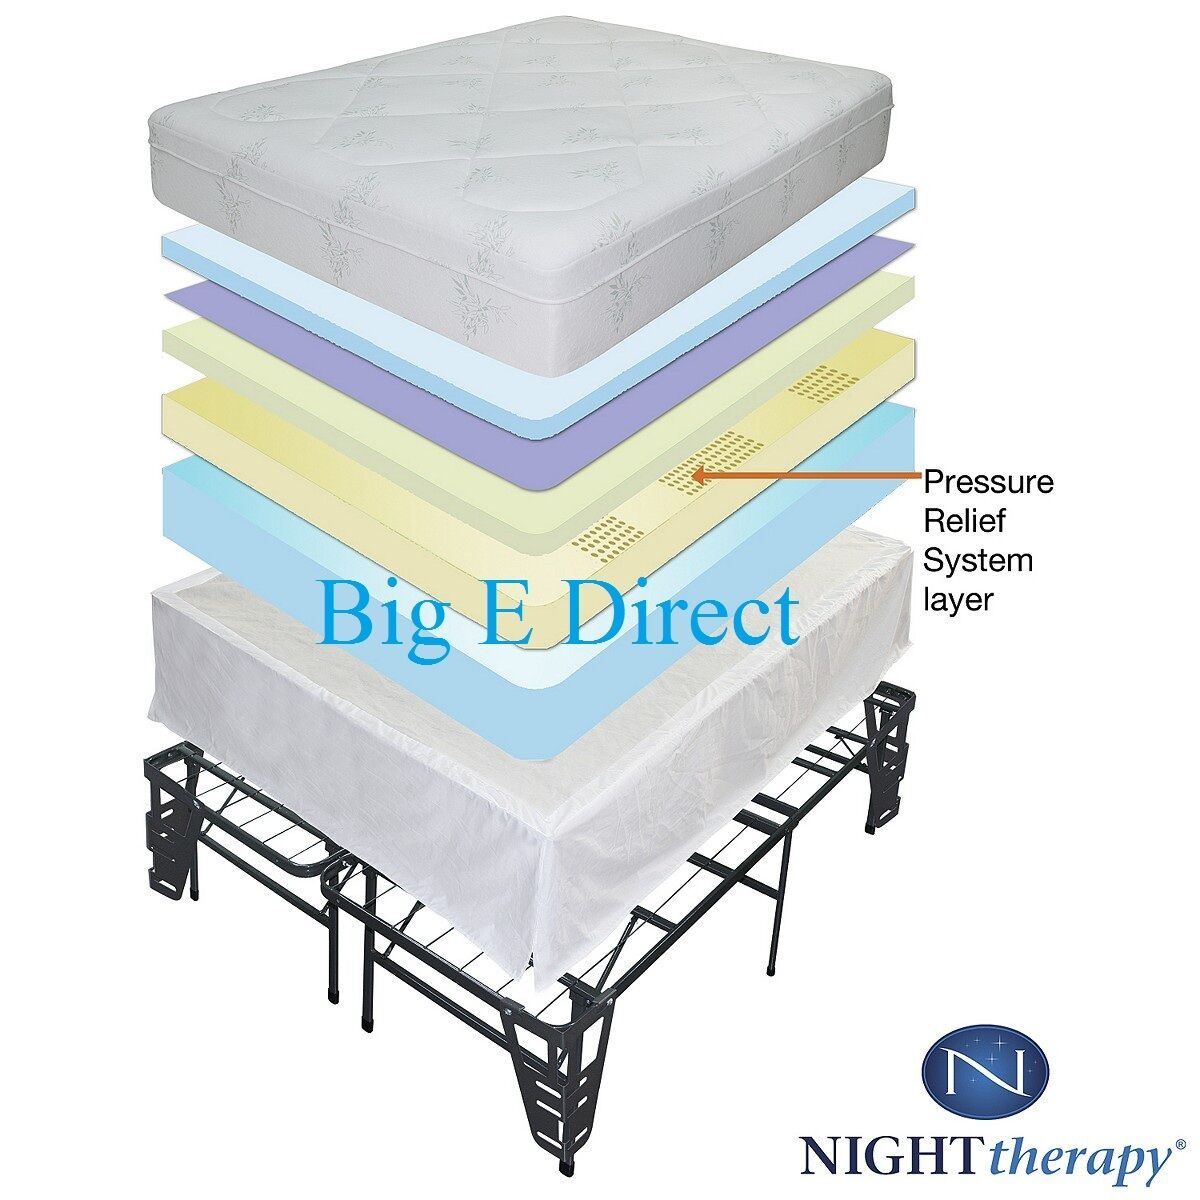 12 night therapy pressure relief memory foam mattress bed frame set 5 sizes ebay. Black Bedroom Furniture Sets. Home Design Ideas